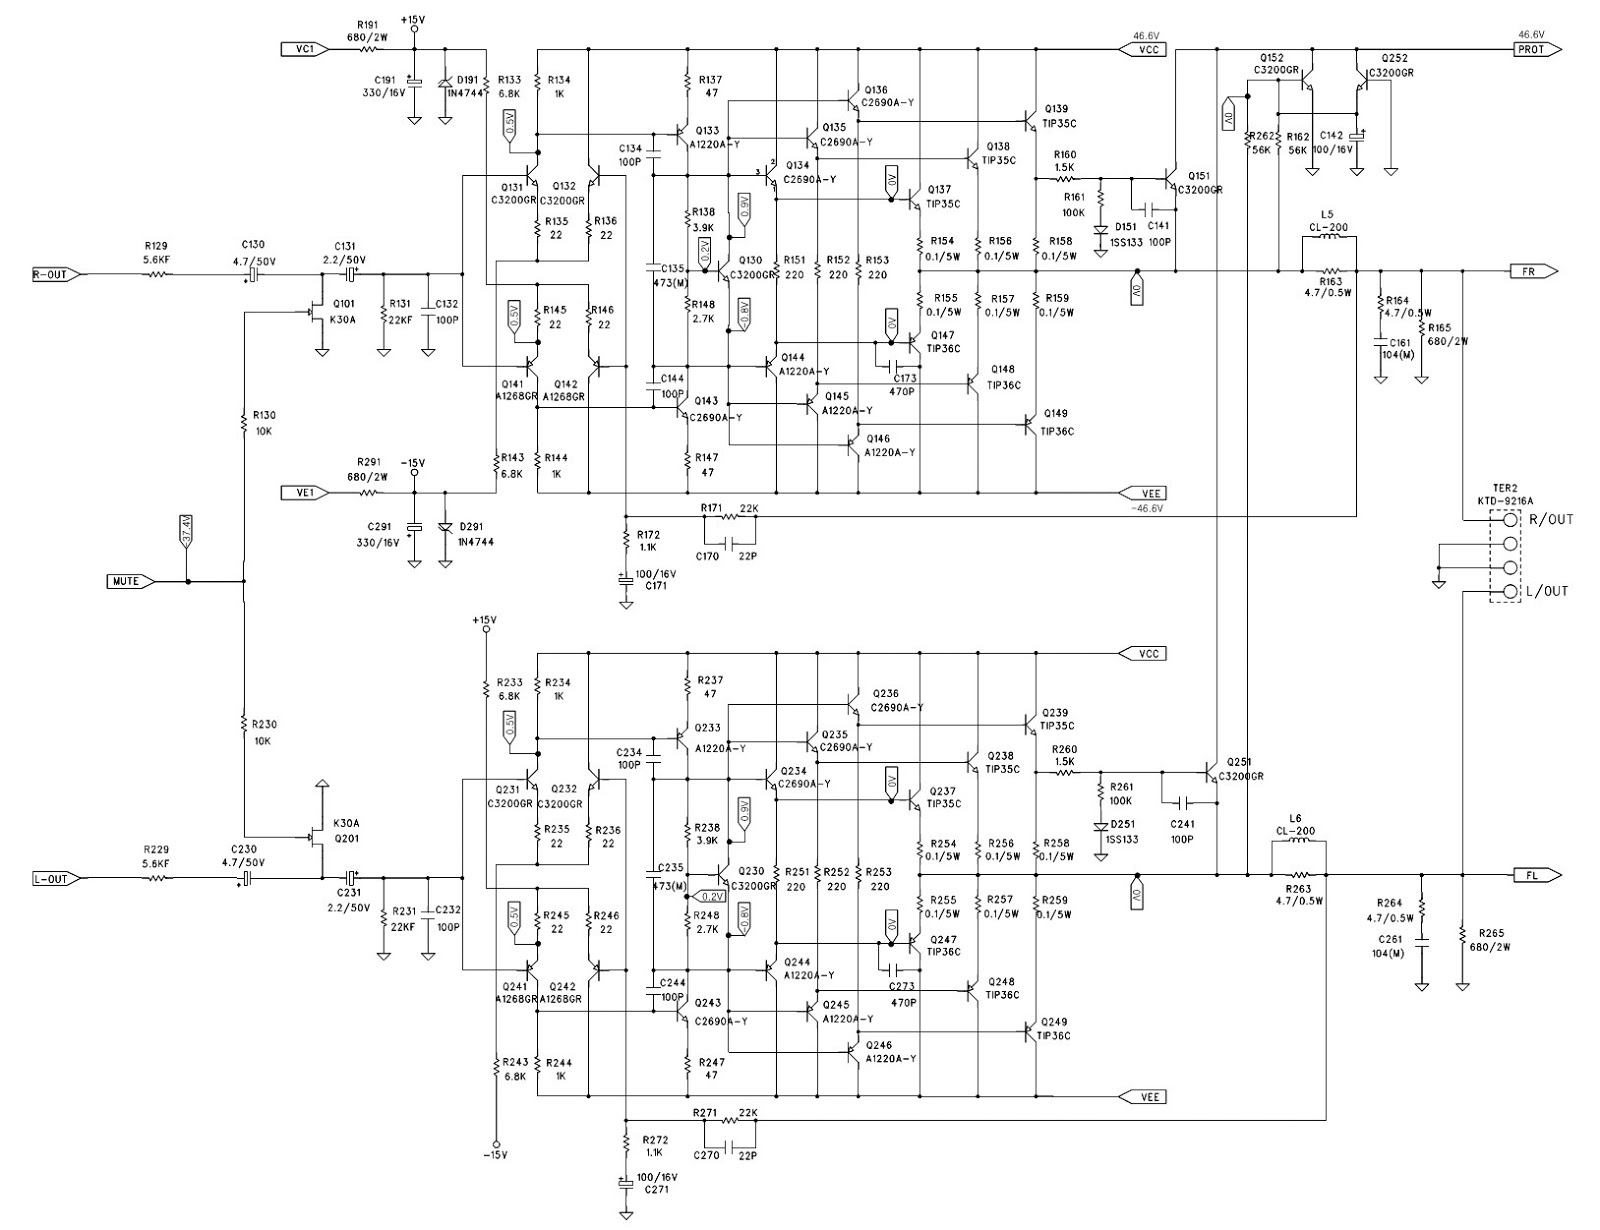 jbl l100t3 wiring diagram toyota sequoia jbl system wiring diagram jbl px 600.2 – 2 channel car amplifier – mosfet output – circuit diagram – wiring diagram ...